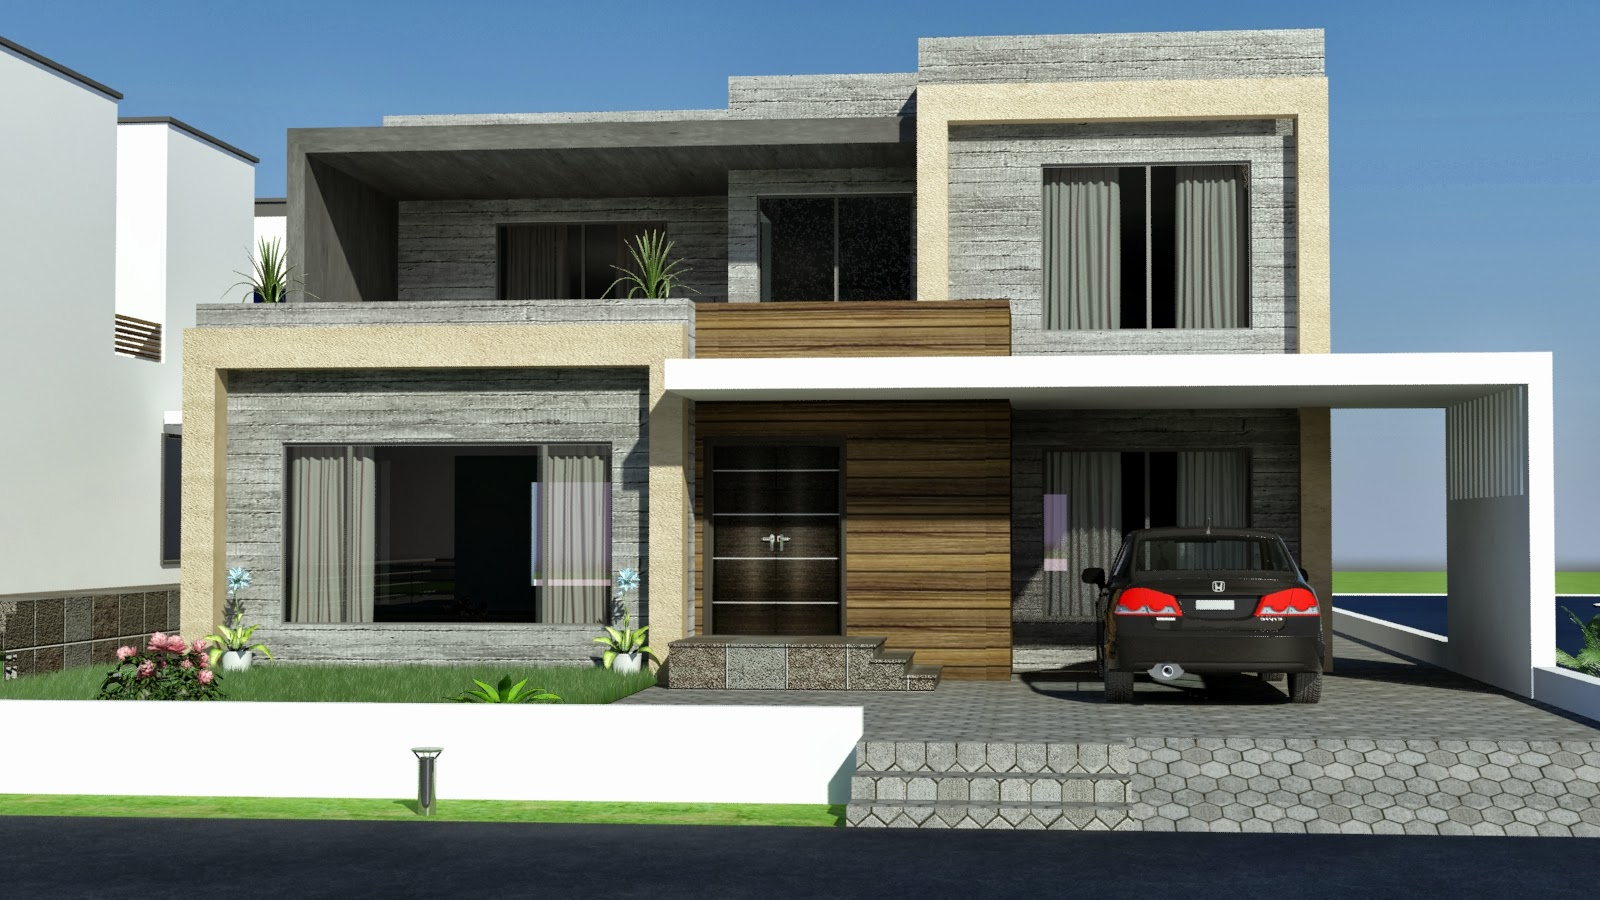 House Front Elevation Photos Modern : Front elevation modern house home design inside